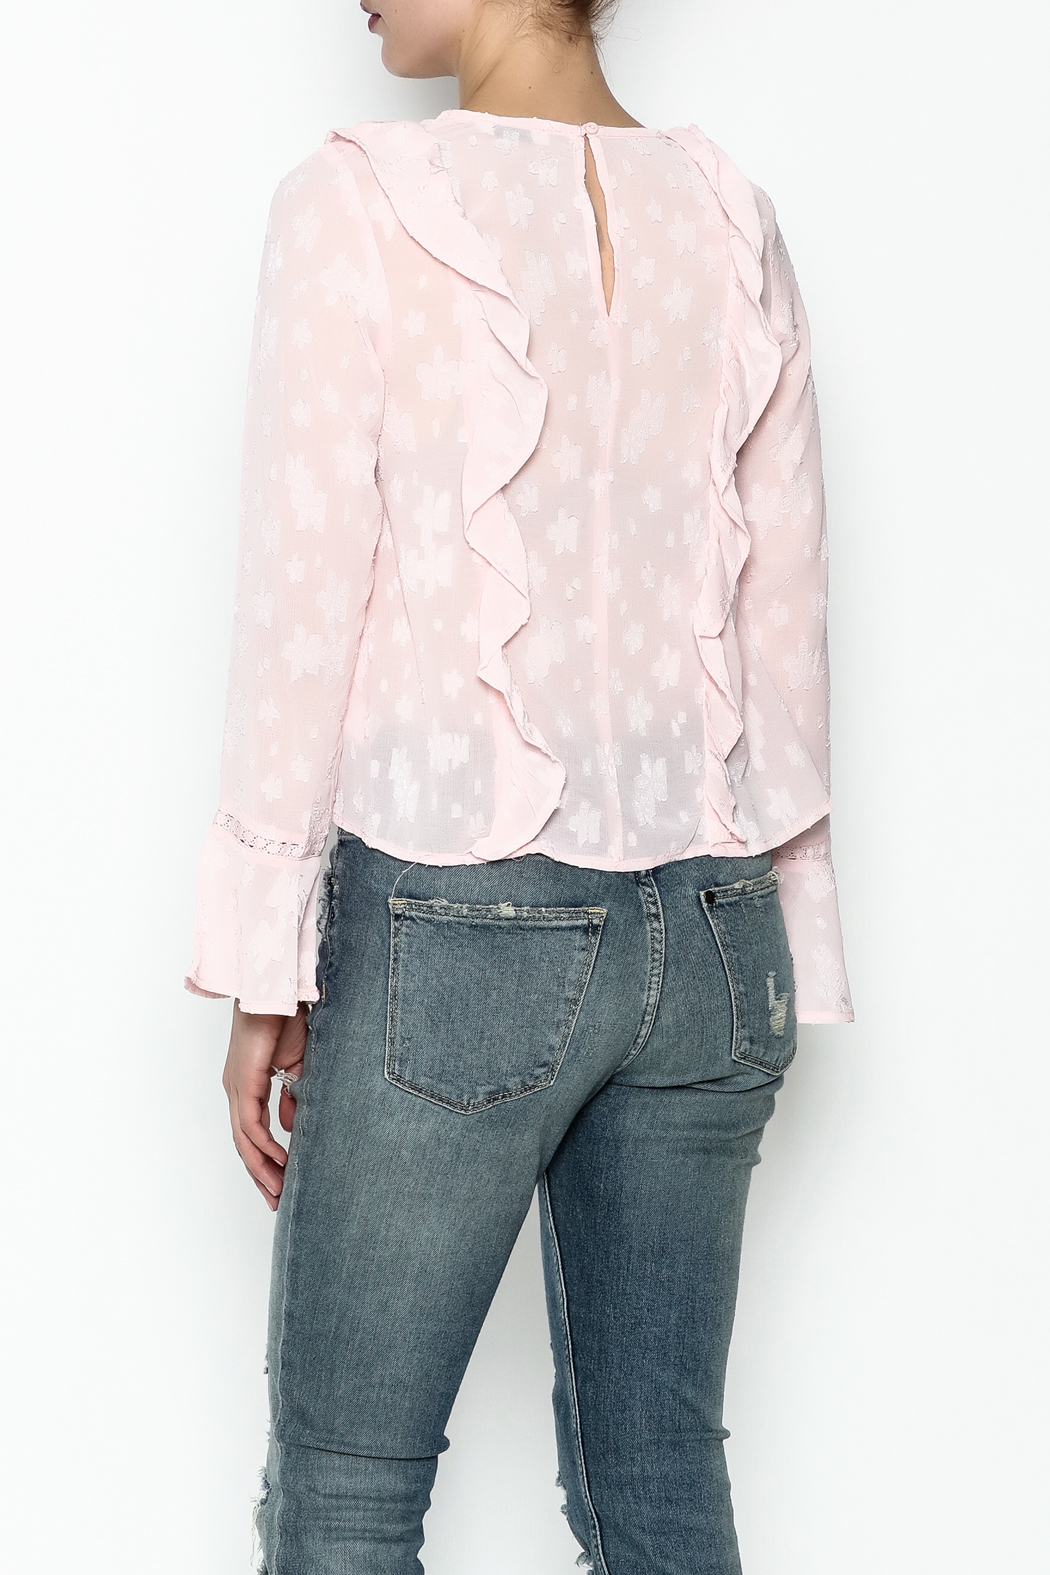 Ark & Co. Pullover Ruffle Blouse - Back Cropped Image